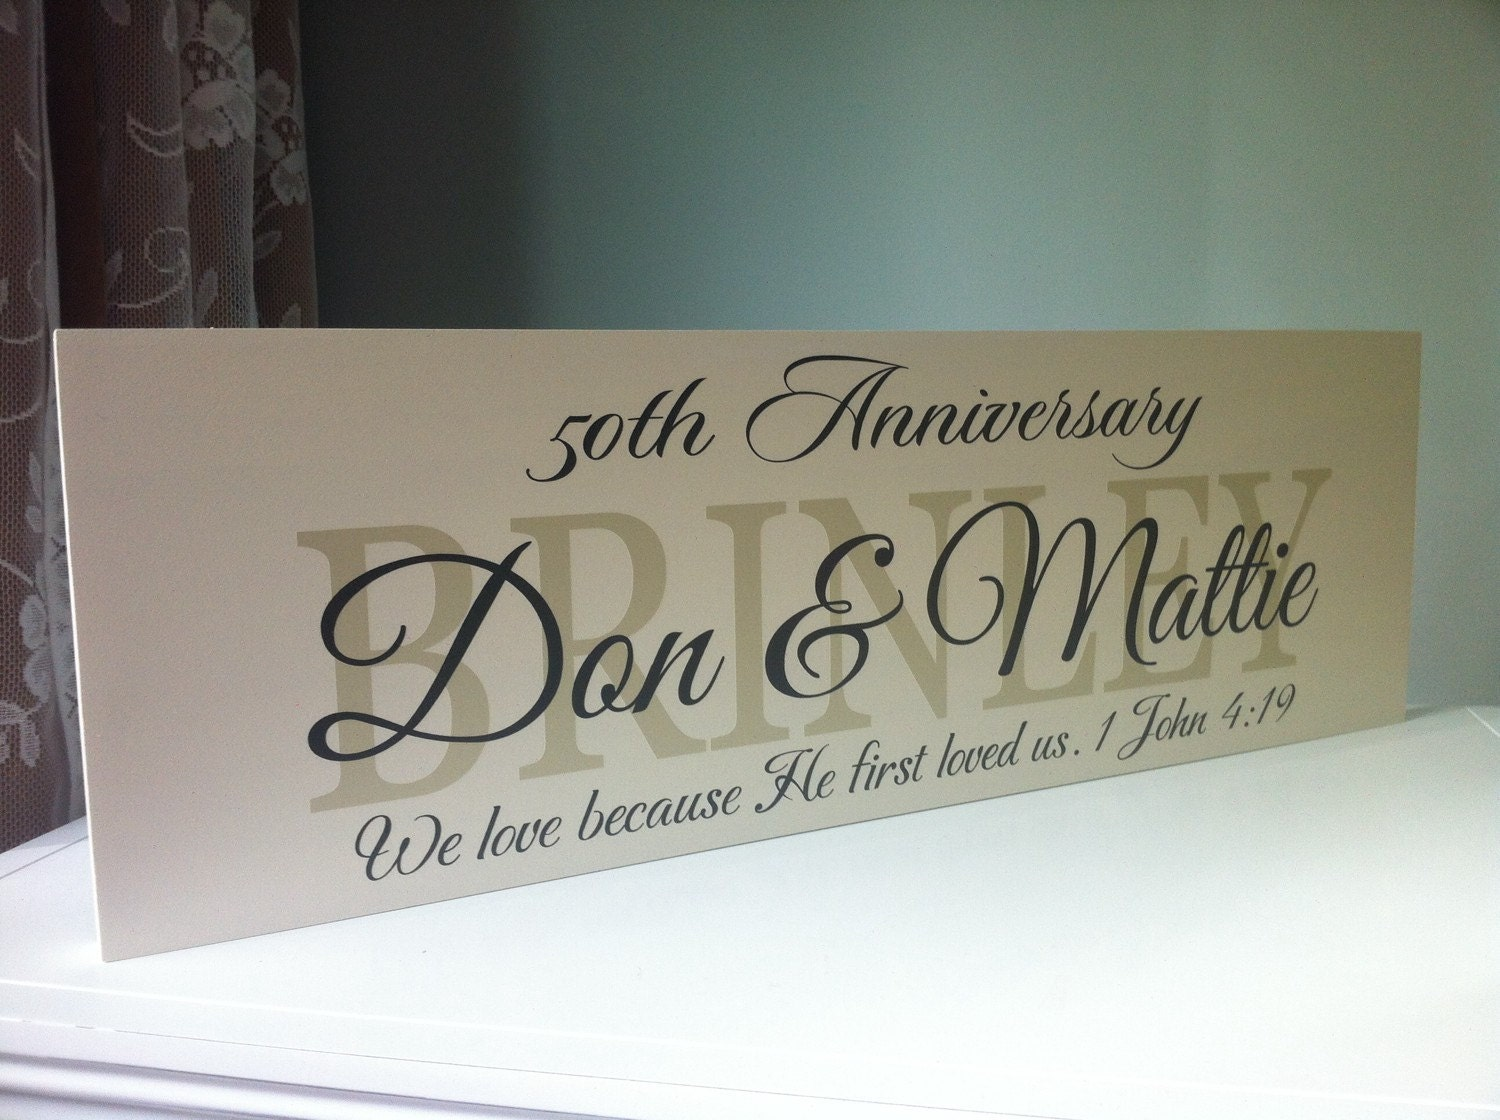 Wedding Anniversary Gift Parents: 50th Wedding Anniversary Gifts For Parents-Gift Ideas-party